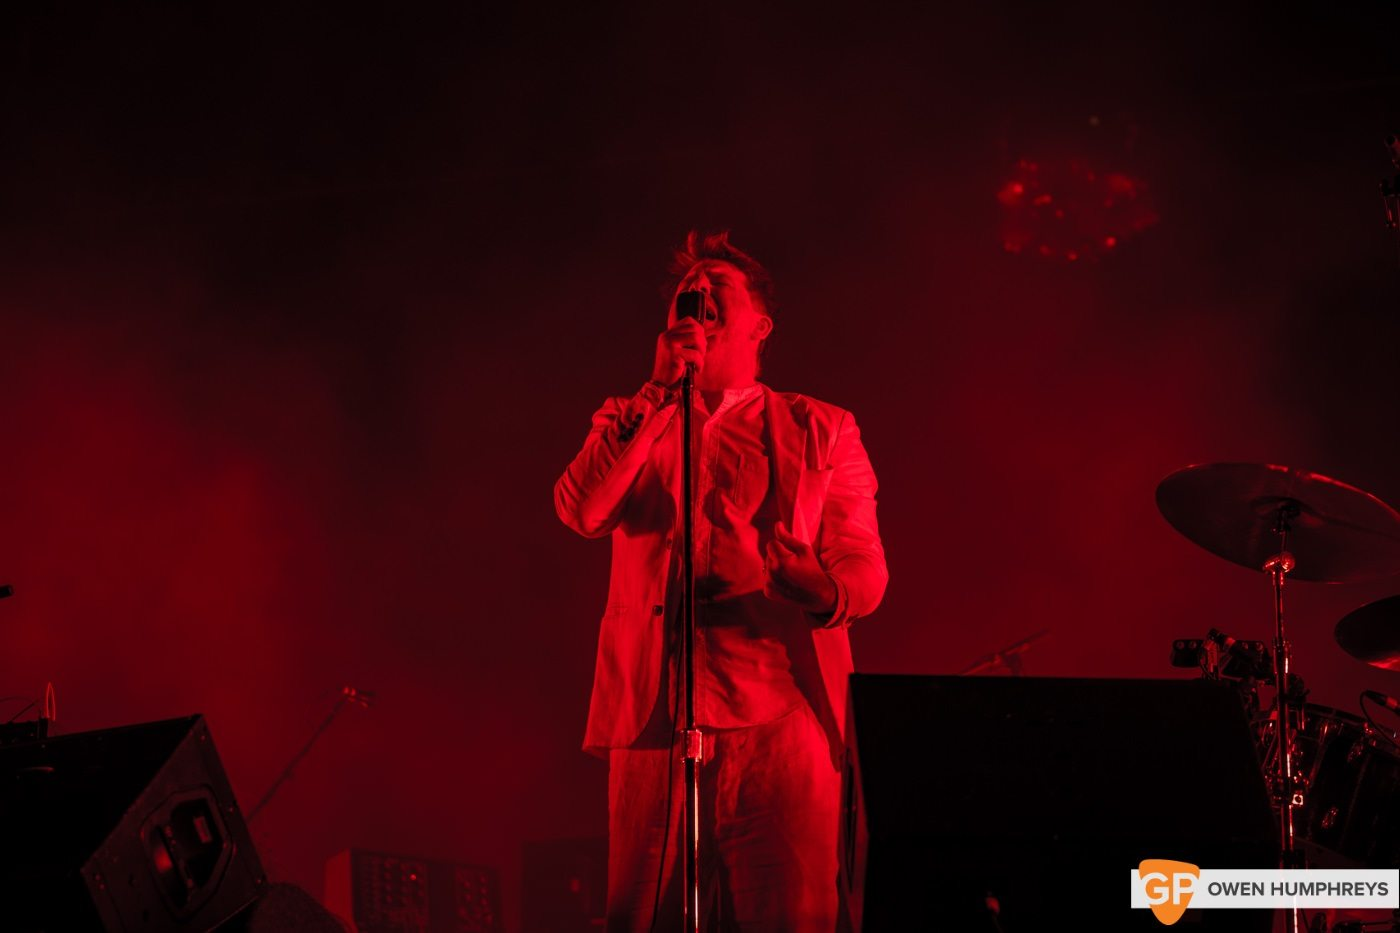 LCD Soundsystem at Electric Picnic by Owen Humphreys